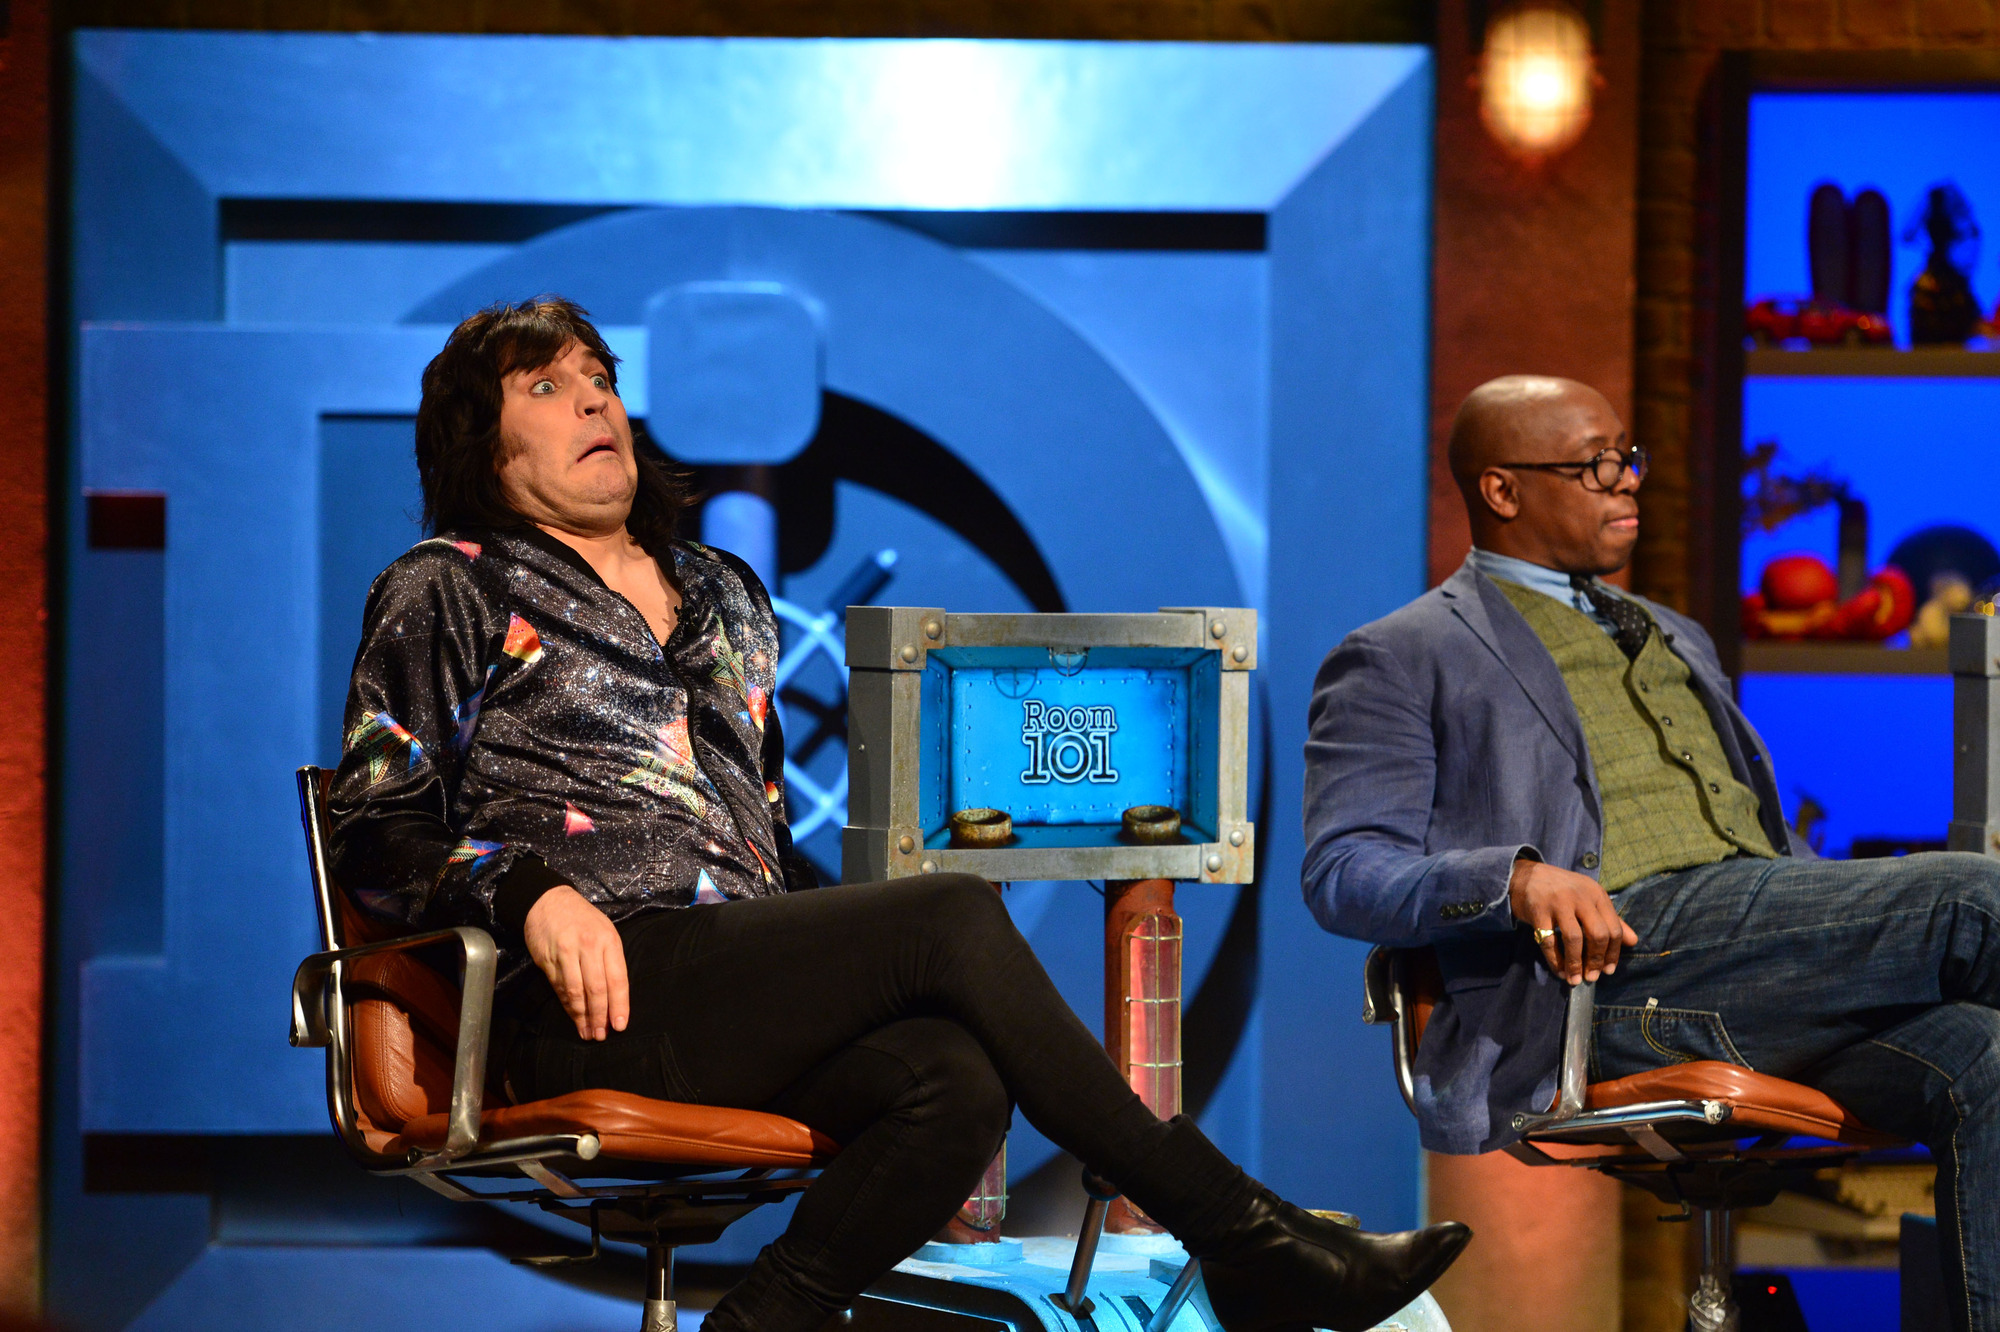 Noel Fielding and Ian Wright on Room 101